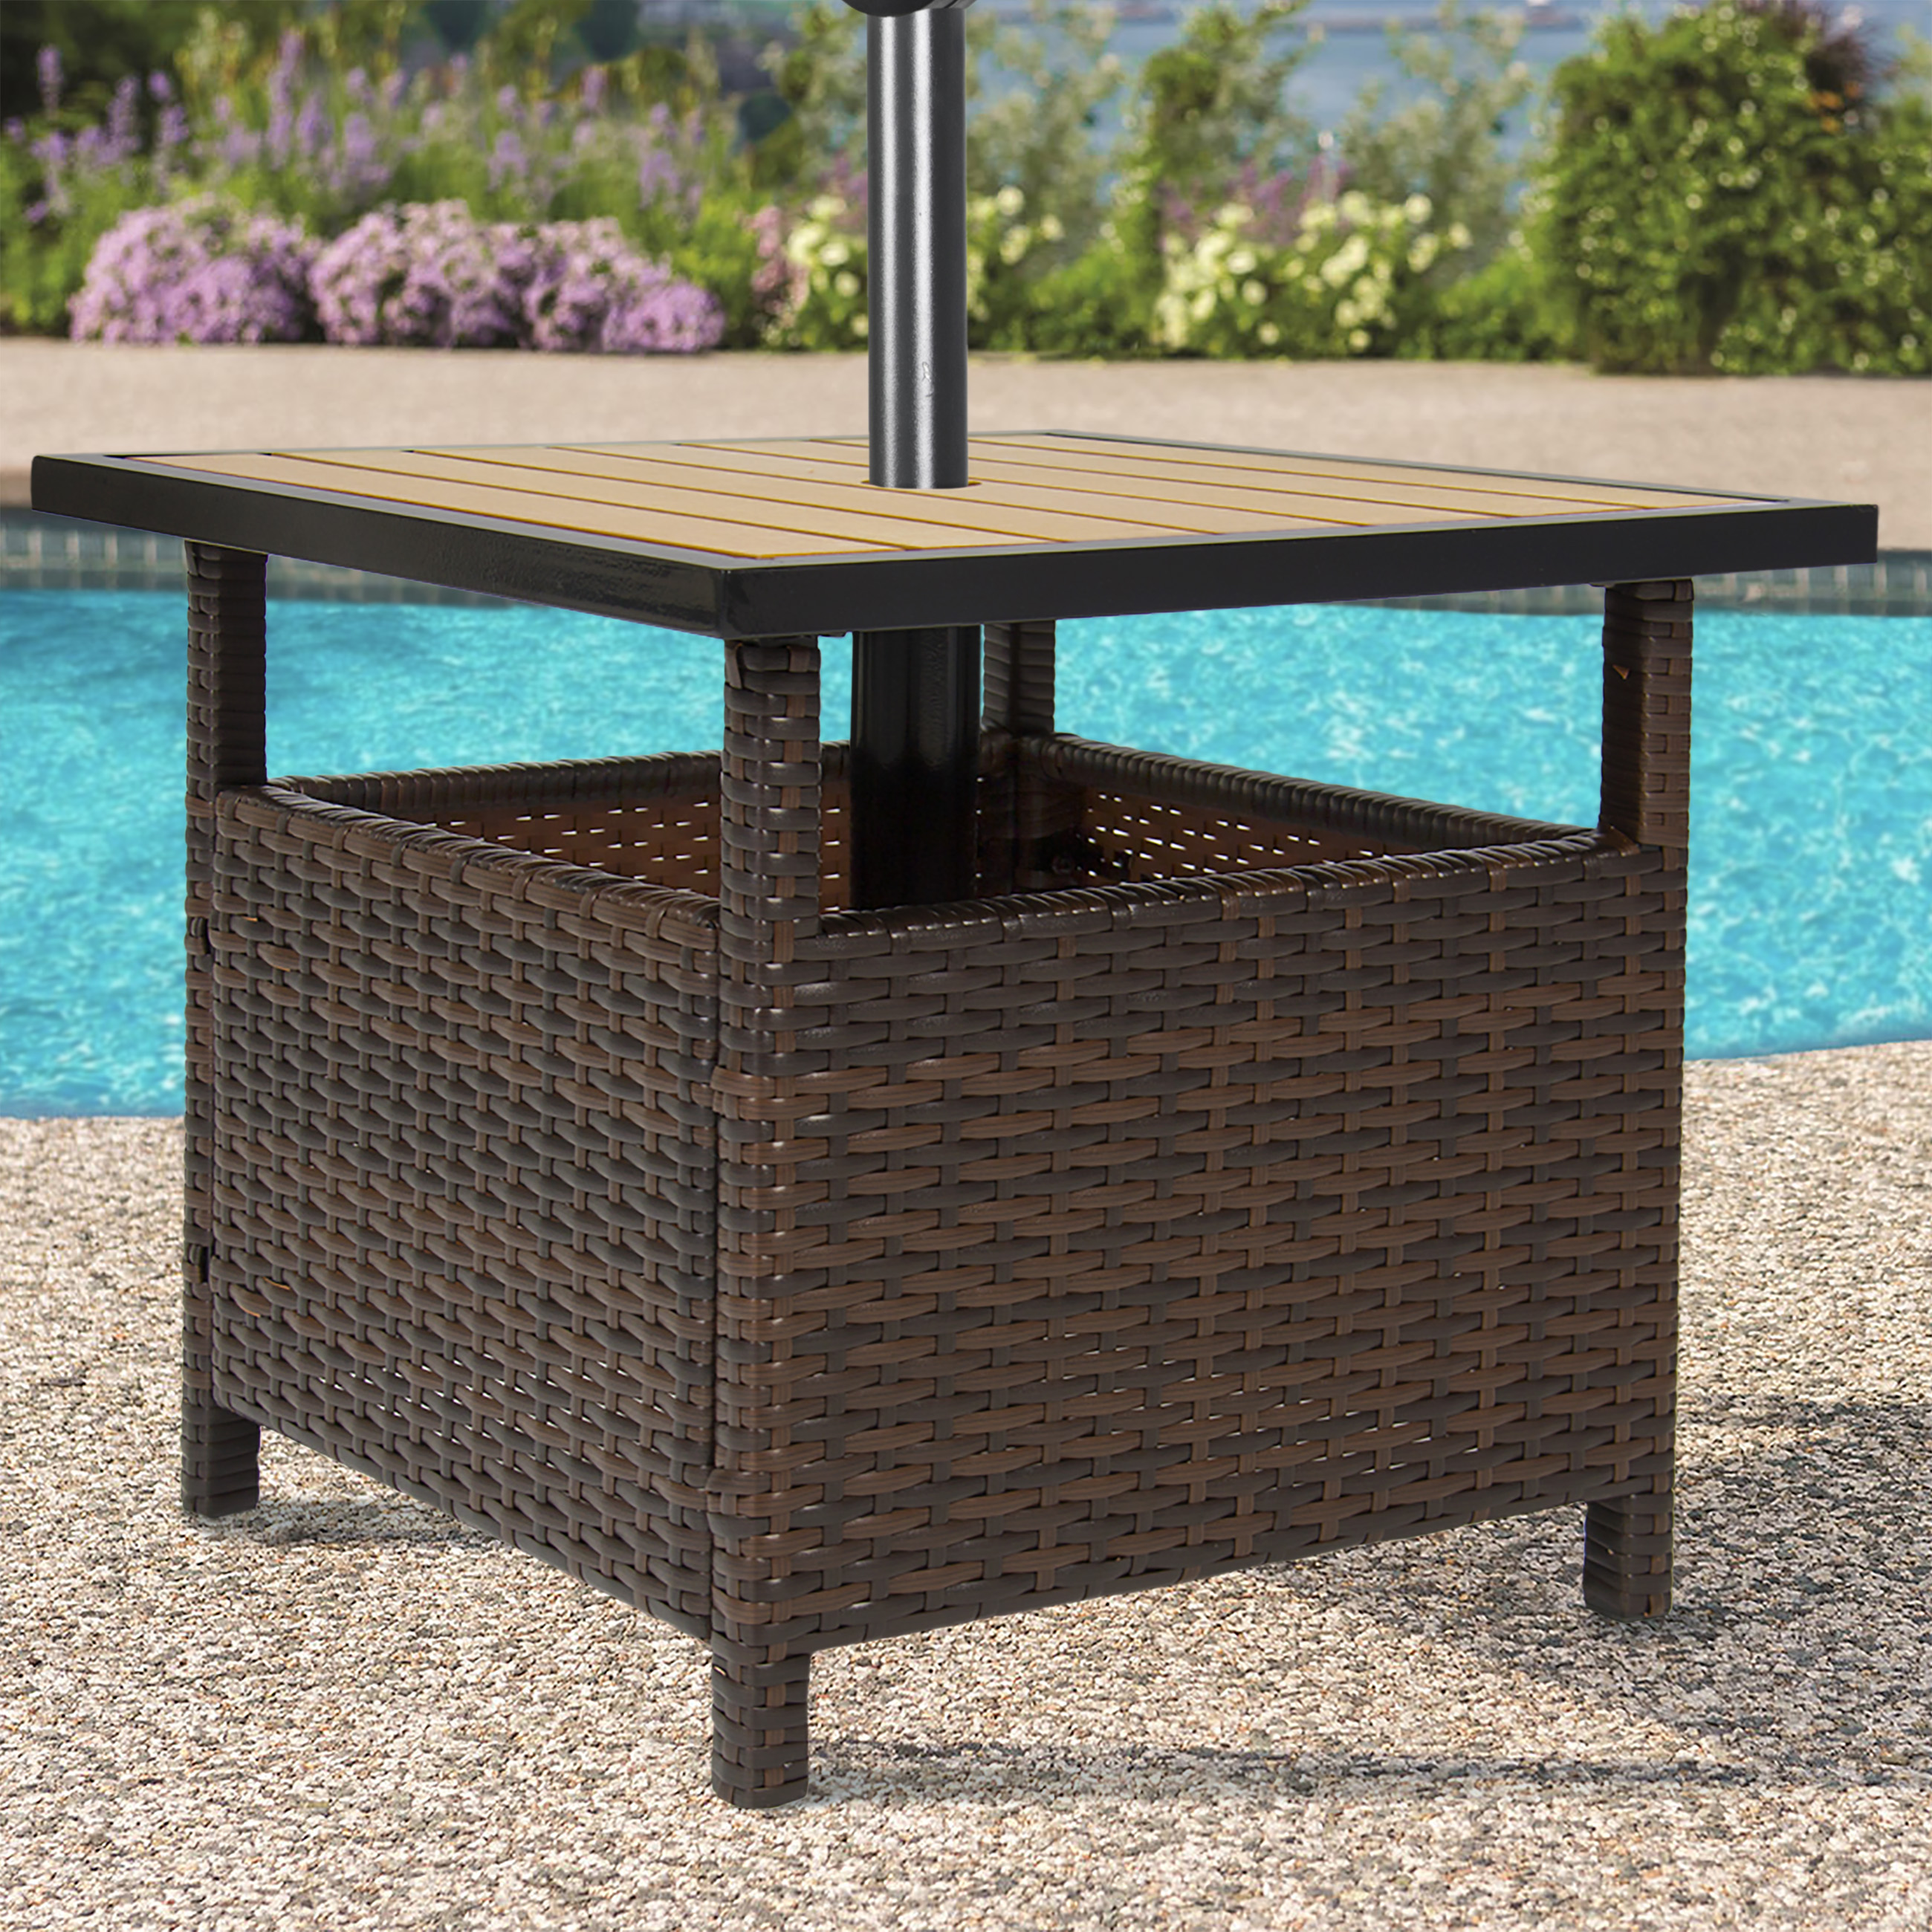 Product Image Best Choice Products Outdoor Furniture Wicker Rattan Patio  Umbrella Stand Table For Garden, Pool Deck